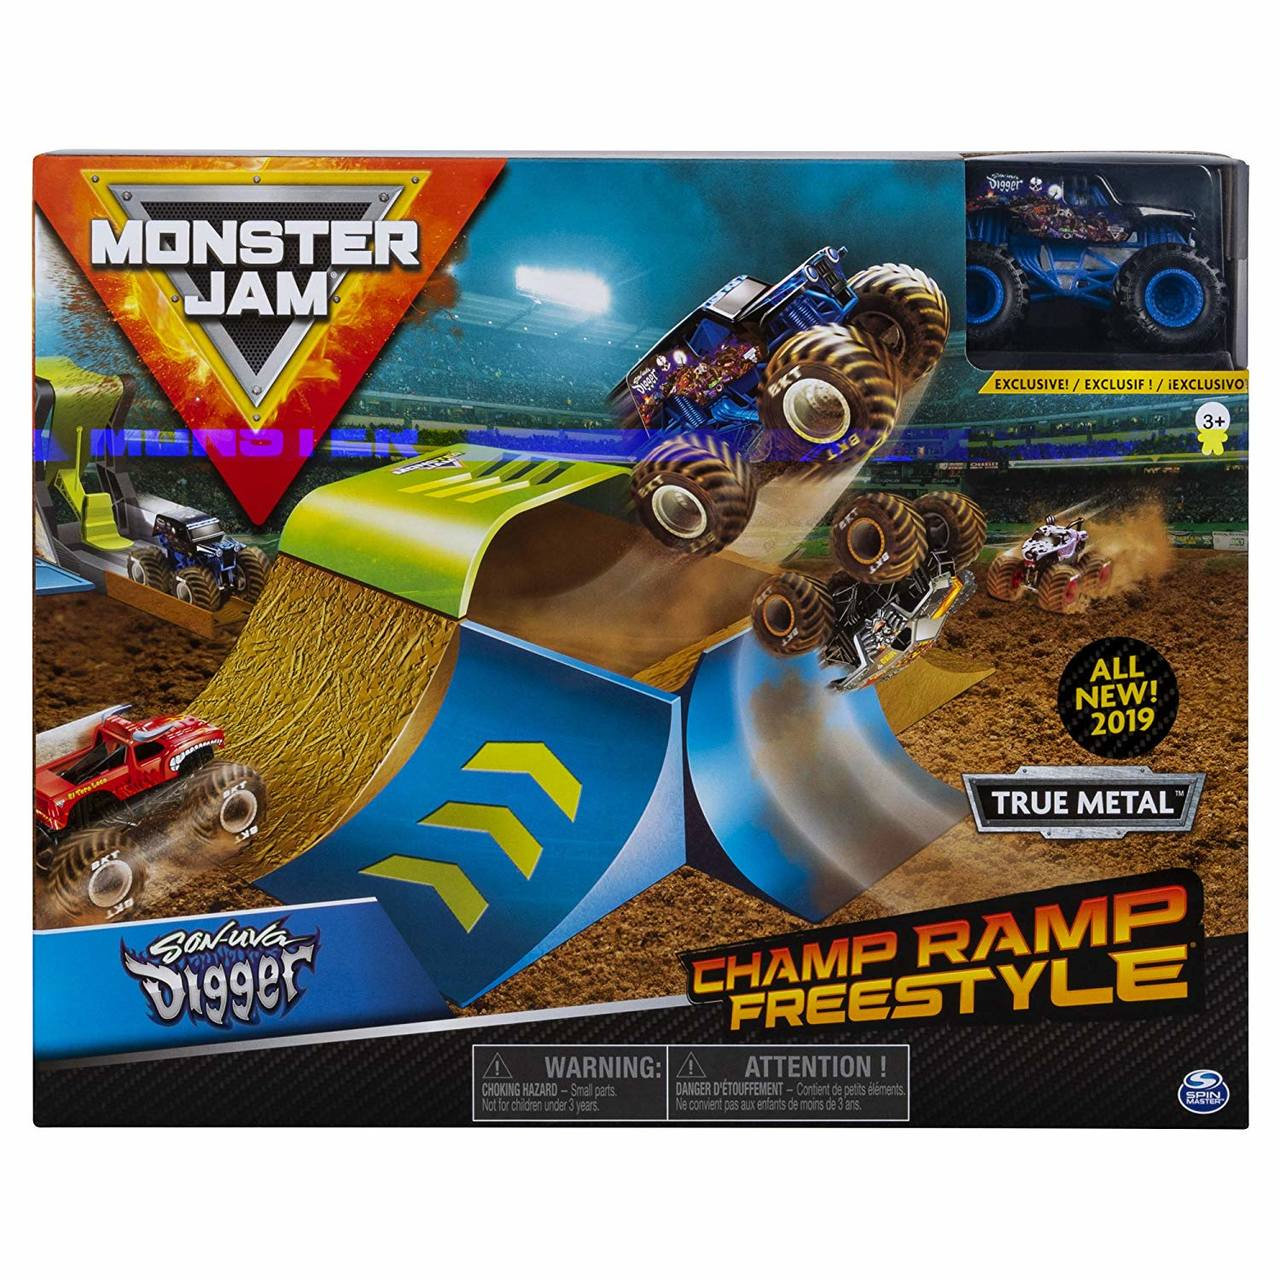 Pista Monster Jam - Playset Champ Ramp Freestyle - Original